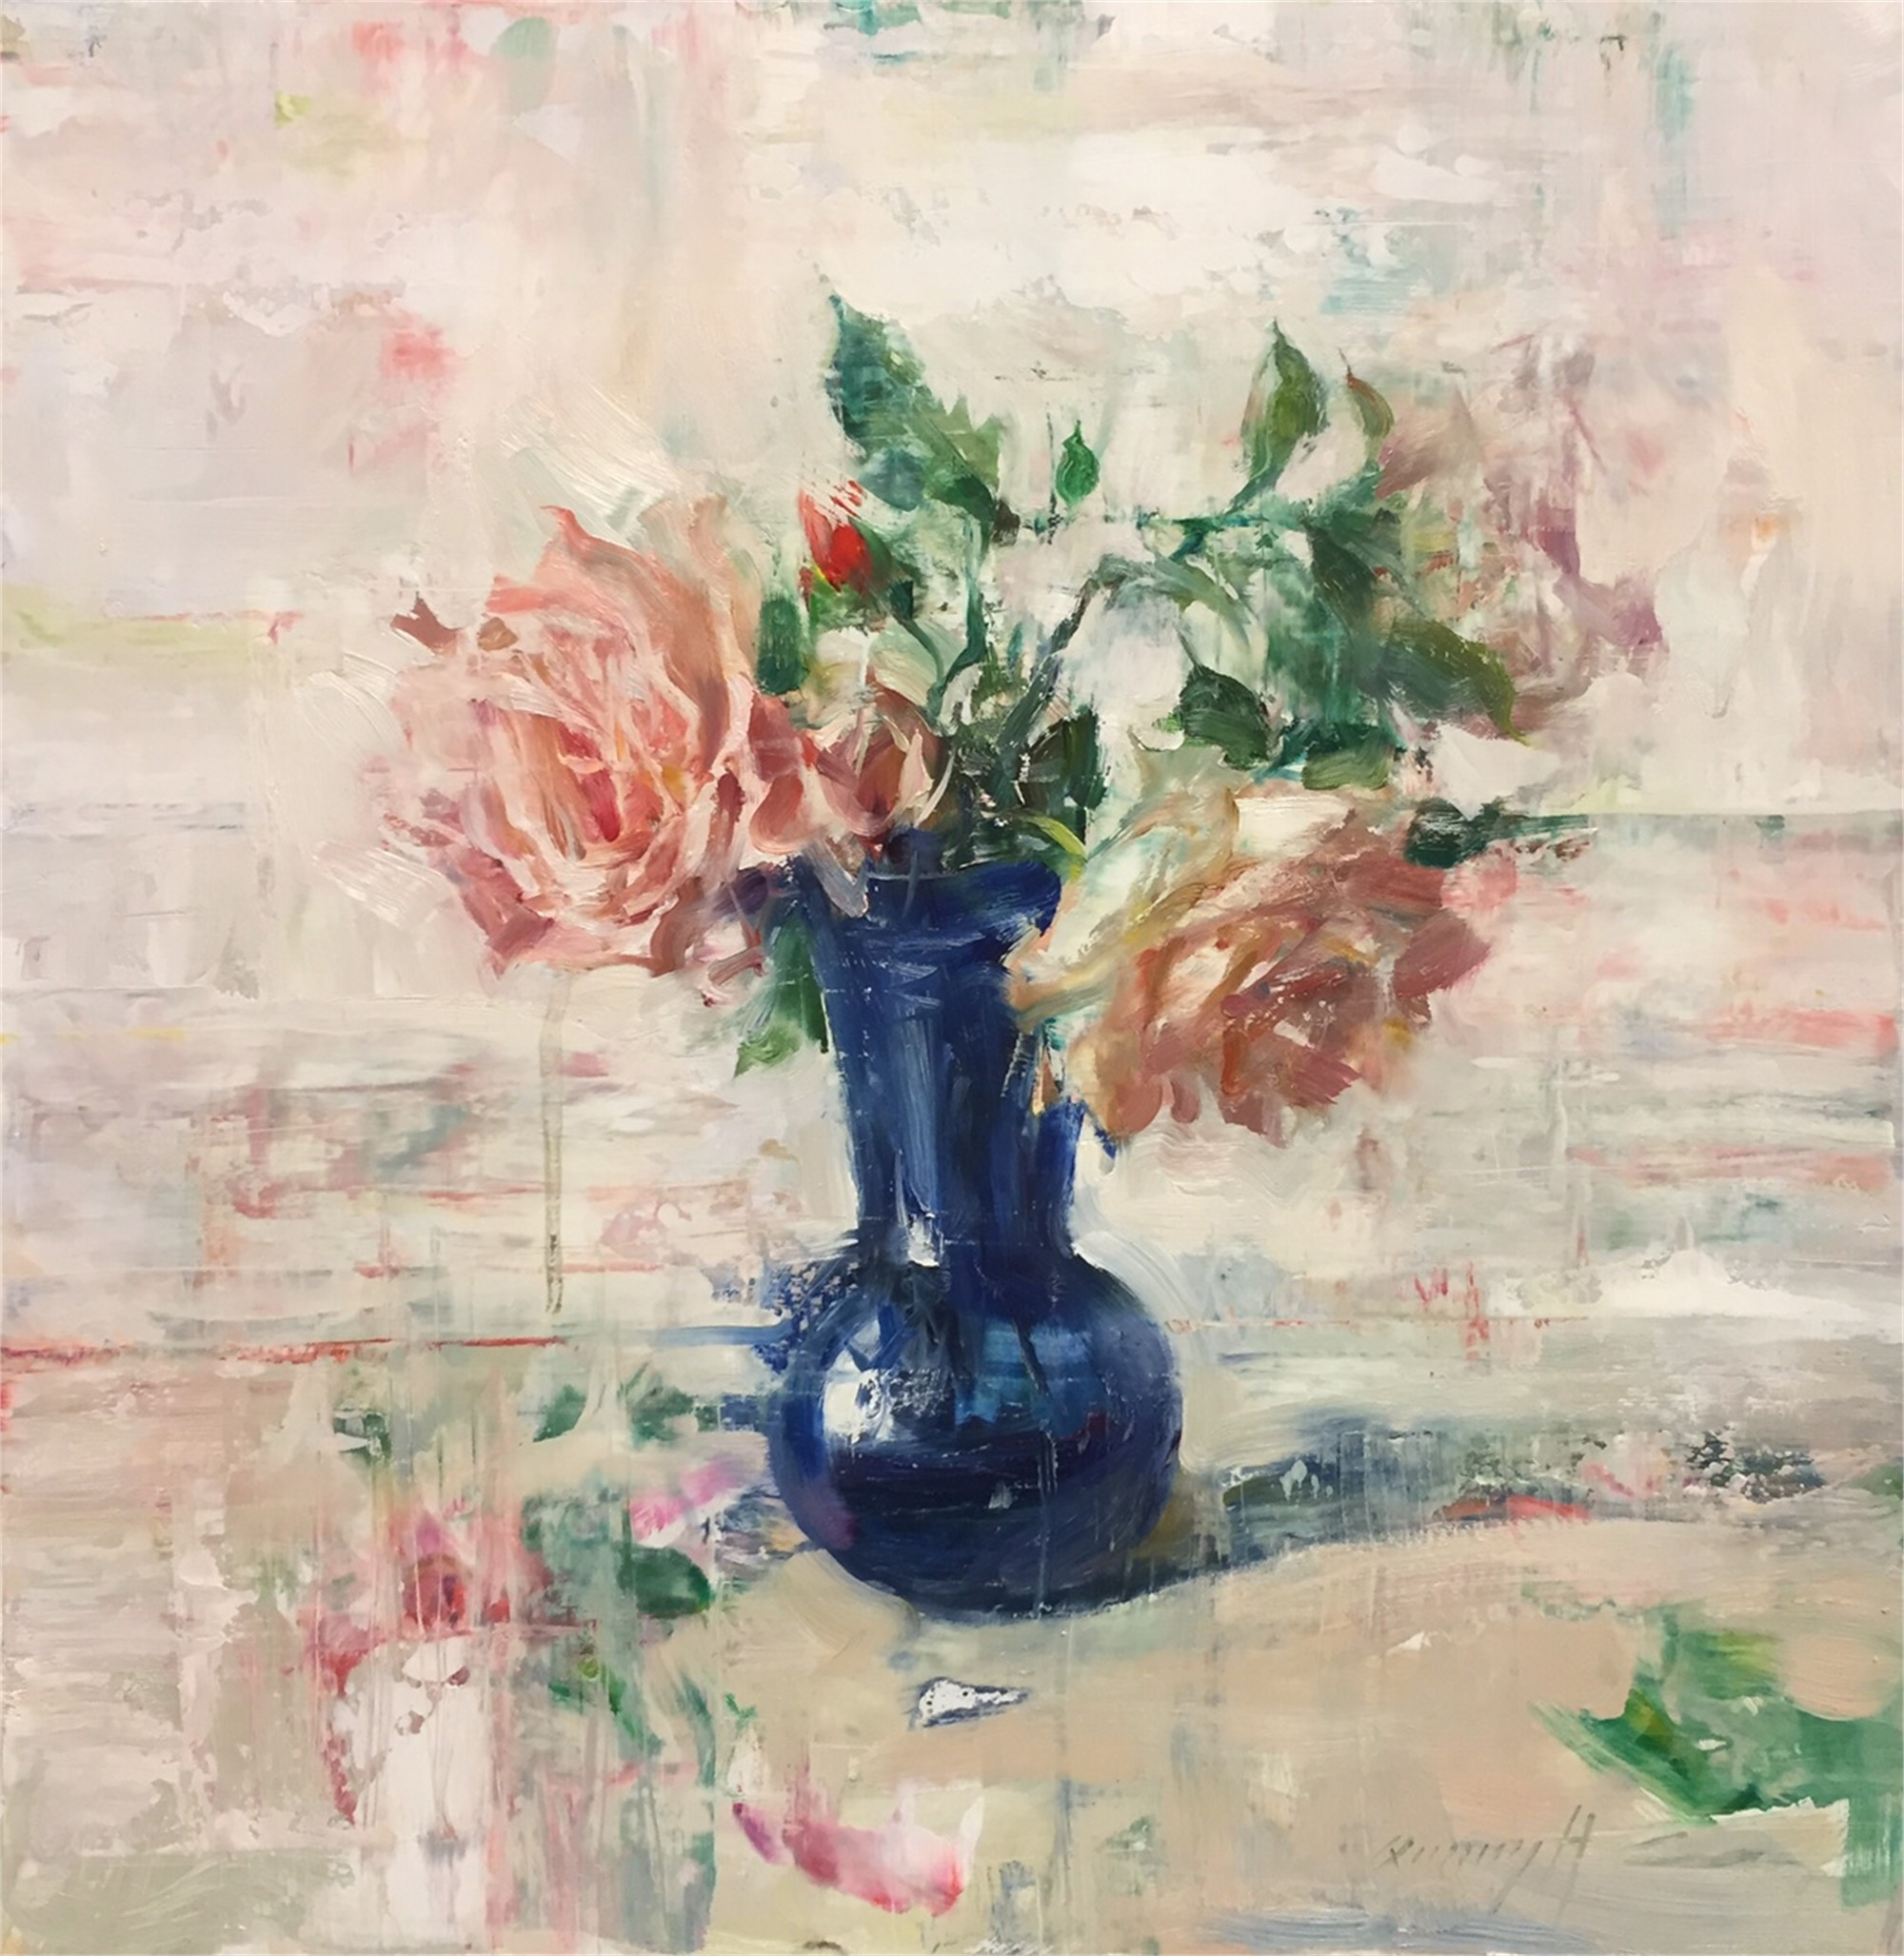 Garden Roses II by Quang Ho